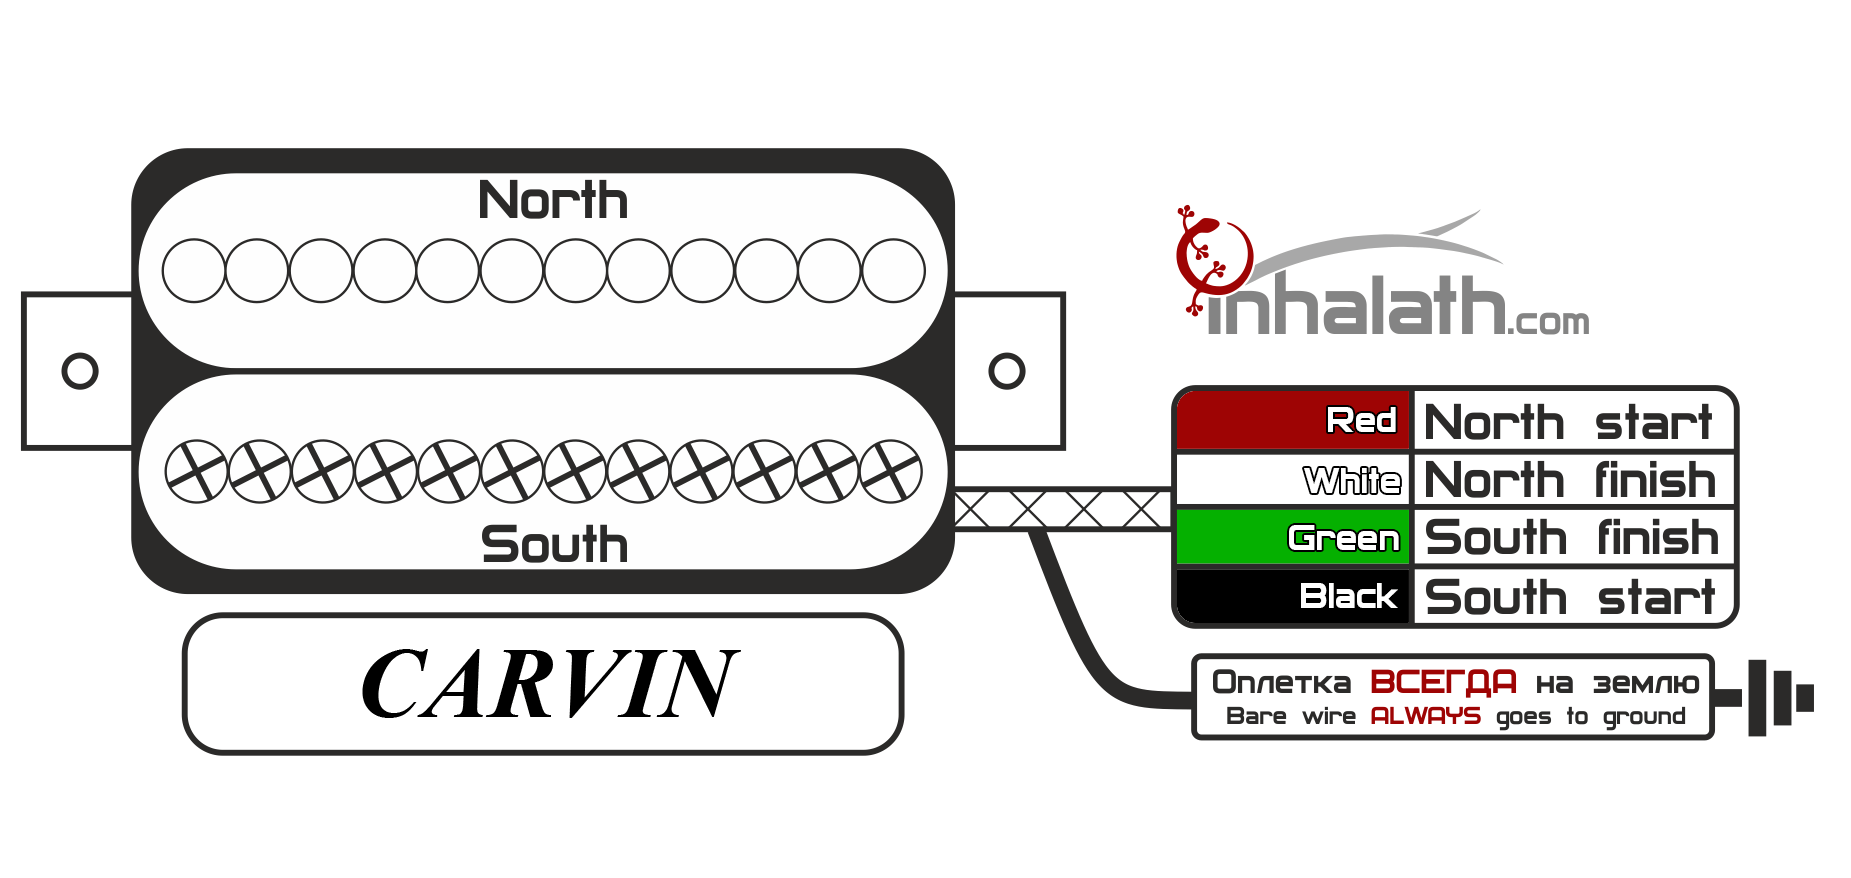 Squier Wiring Diagram as well Emg 81 85 Wiring Diagram as well Dimarzio Wiring Diagram For 2 Humbuckers Push additionally Jackson Electric Guitar Wiring Diagrams in addition Two Band Ptb Tone Control Useful Easy Cheap Awesome. on carvin pickup wiring